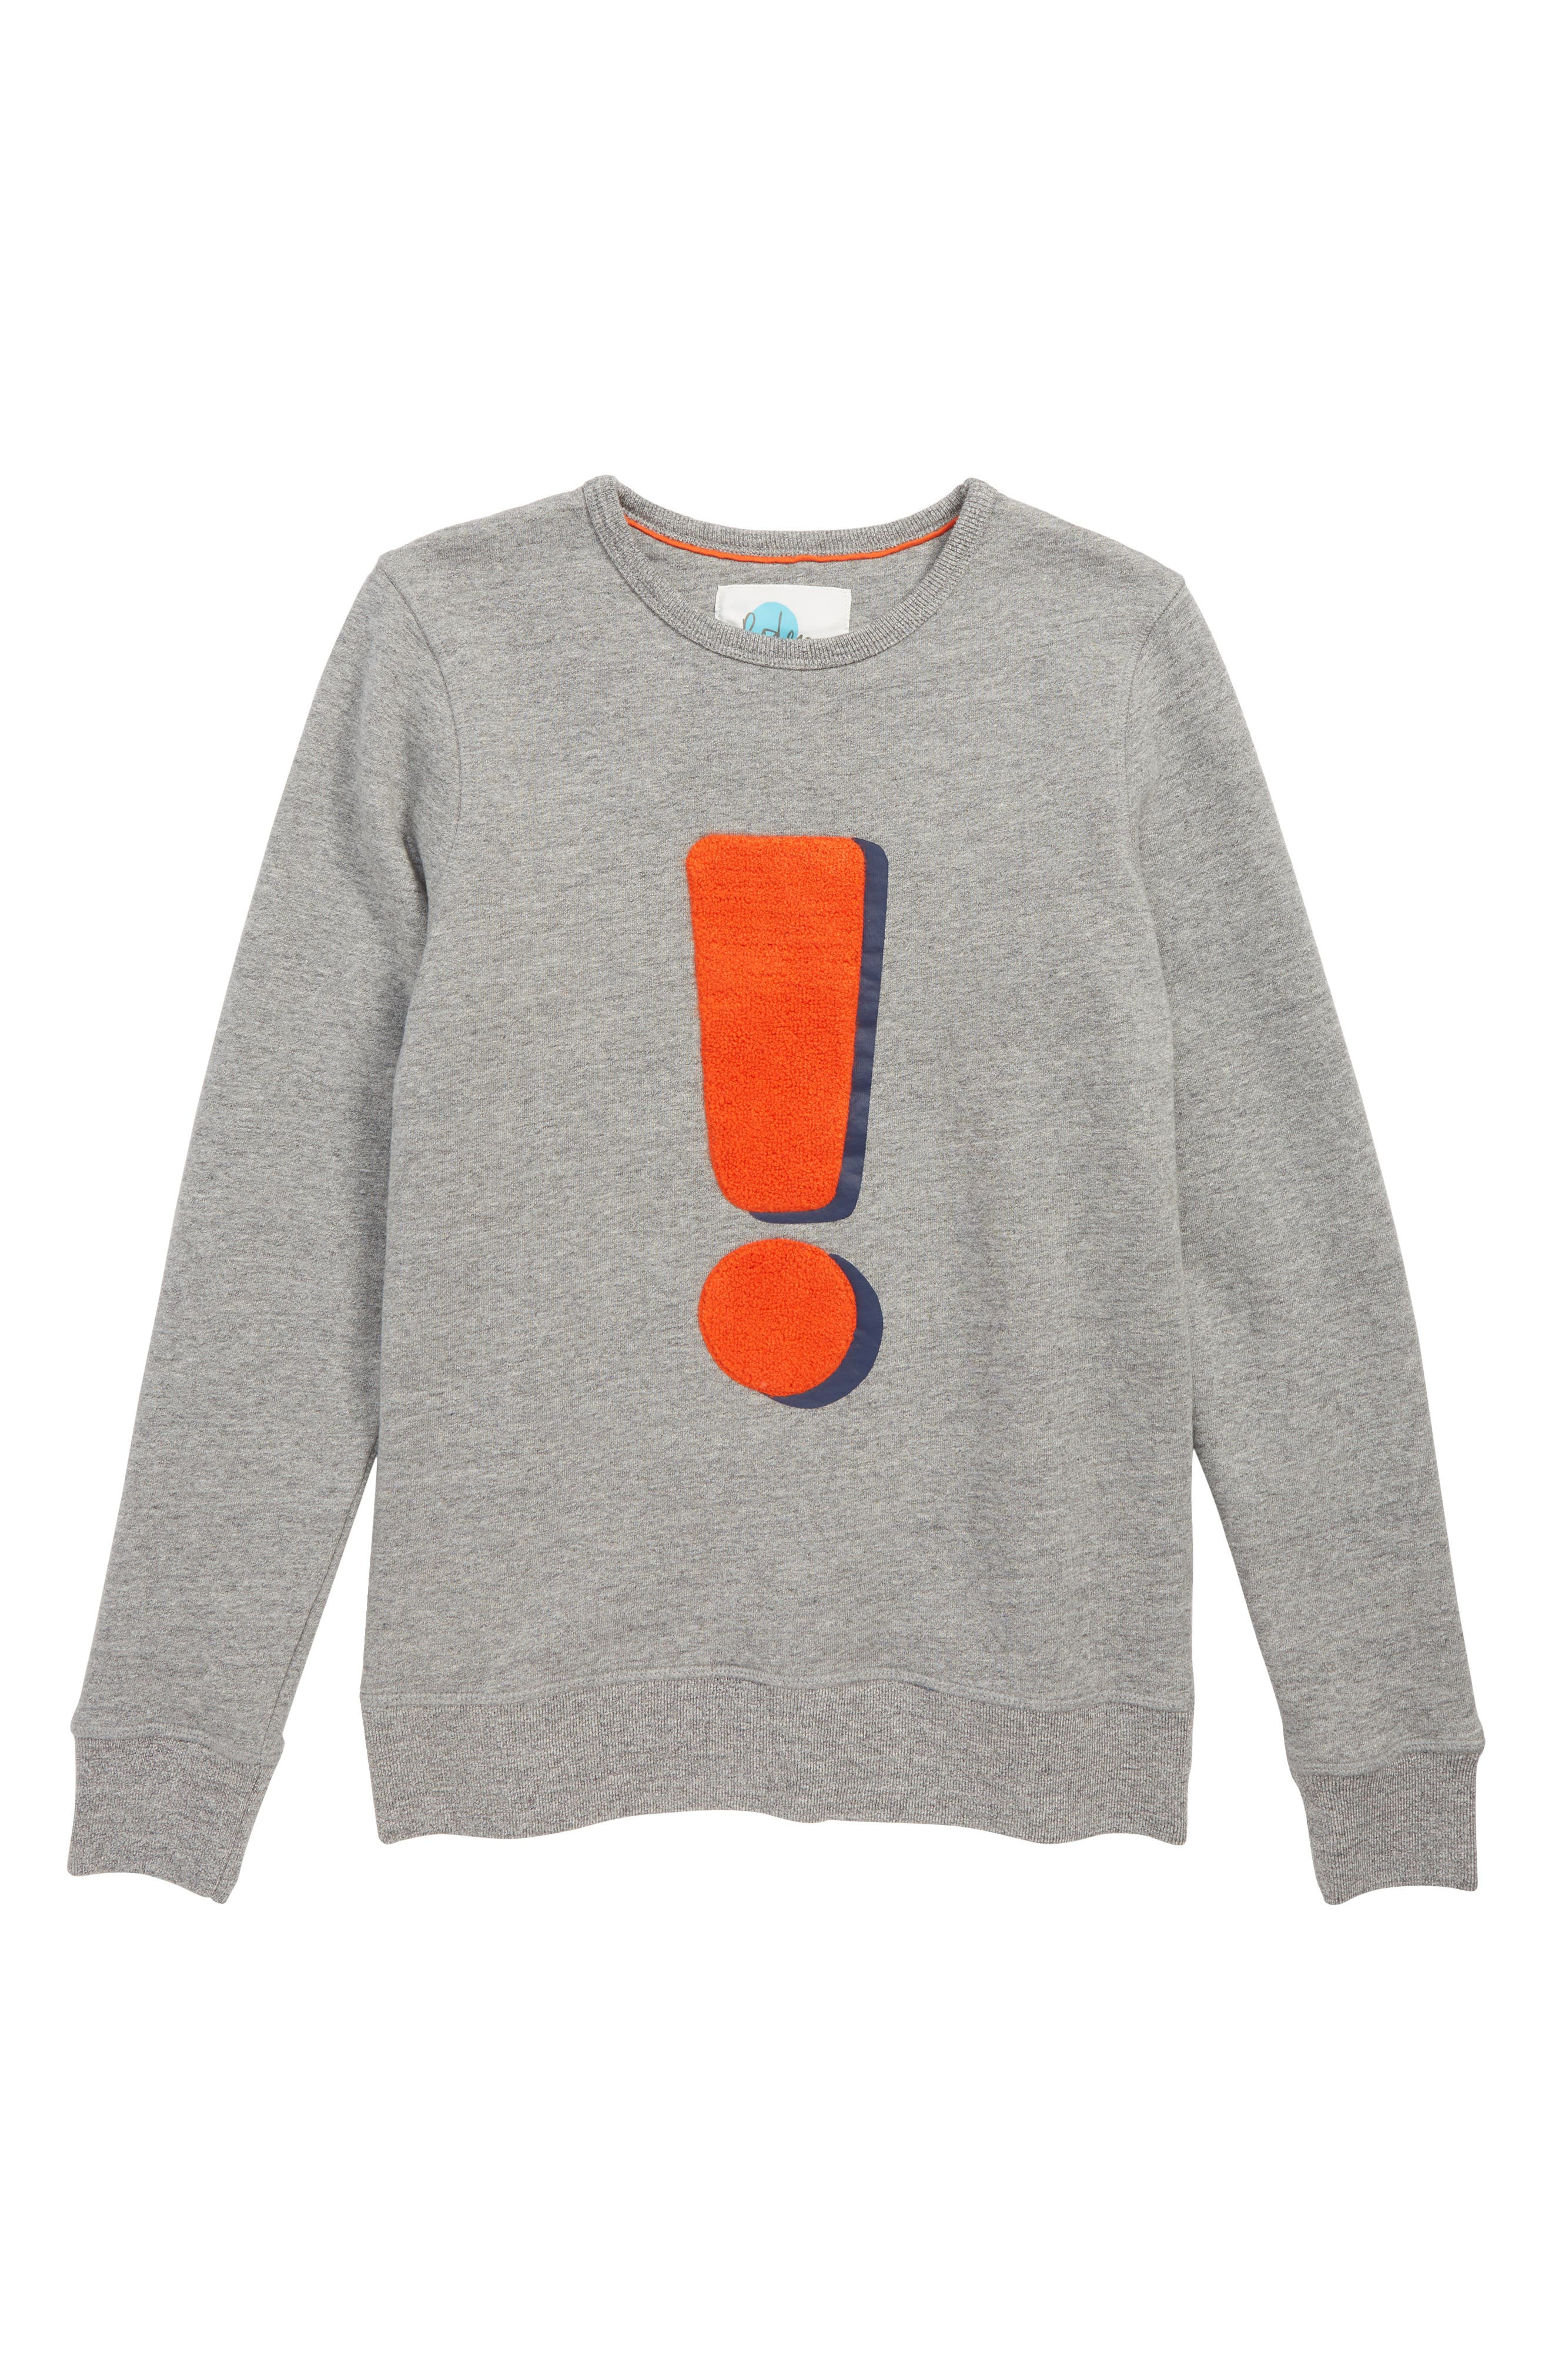 Exclamation Graphic Sweater,                         Main,                         color, GREY MARL